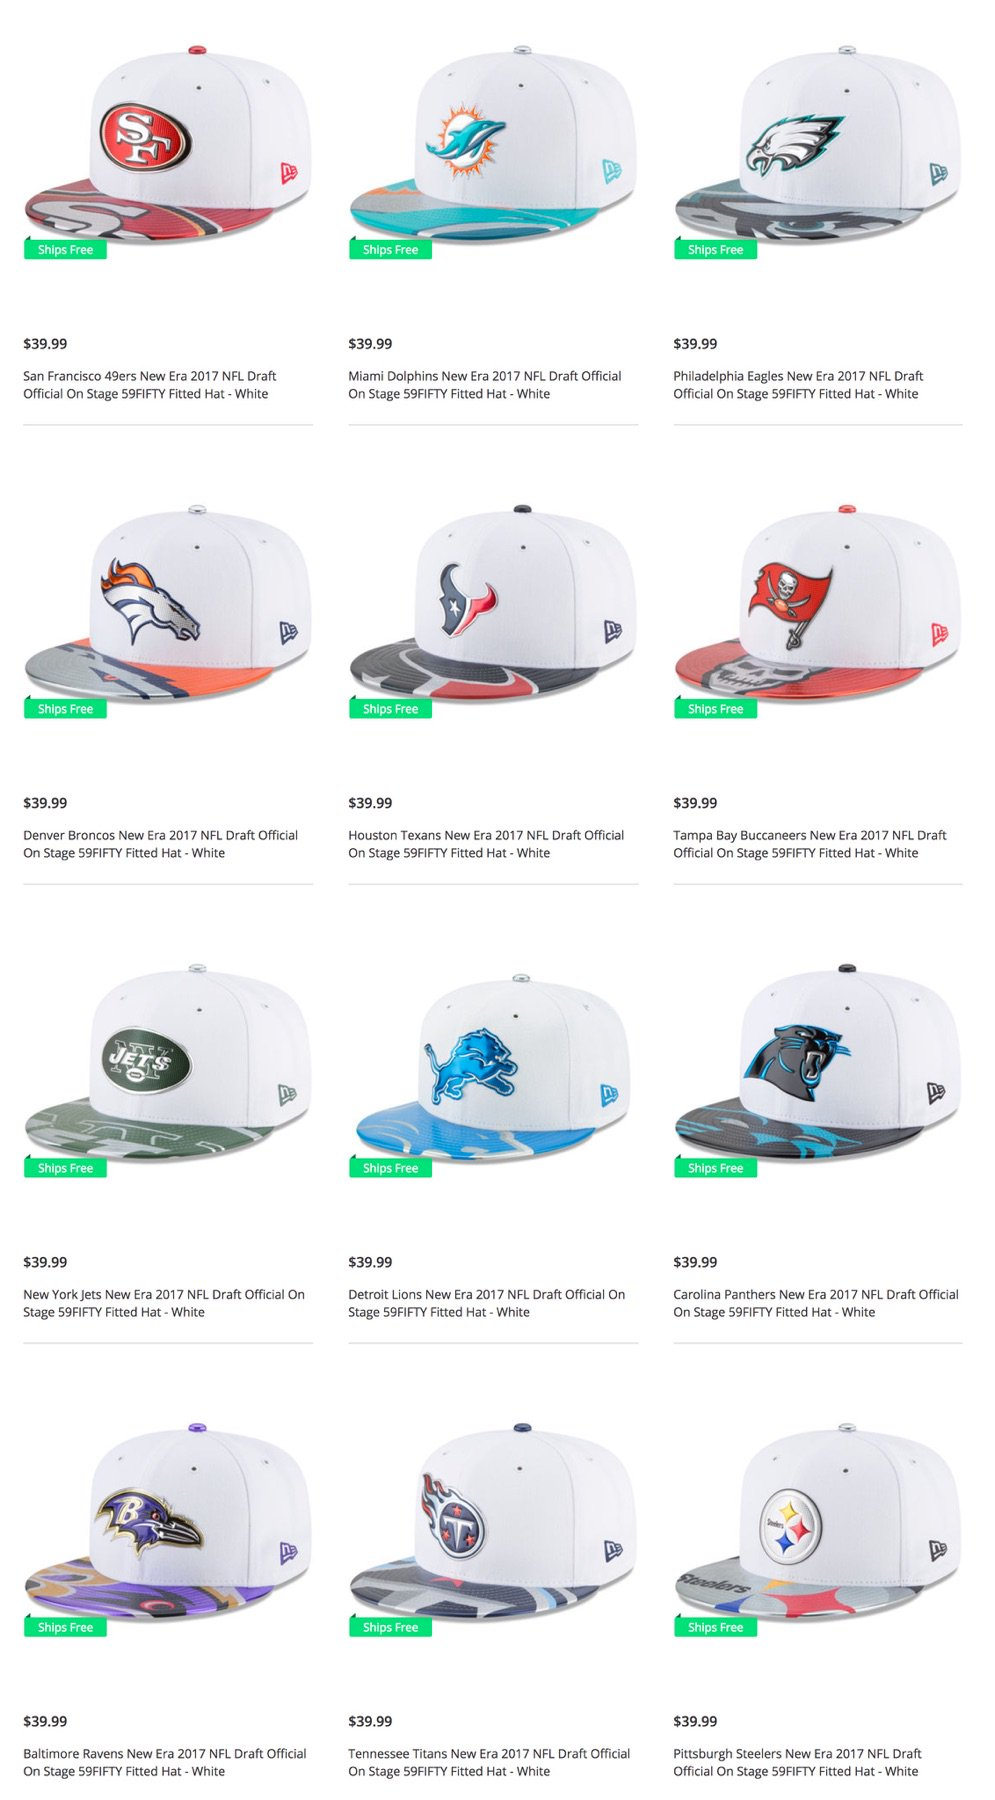 3cf43b1d3 ... new era white orange front n center low profile 59fifty fitted hat  cheap j23 iphone app on twitter official 2017 nfl draft hats just dropped.  use code ...